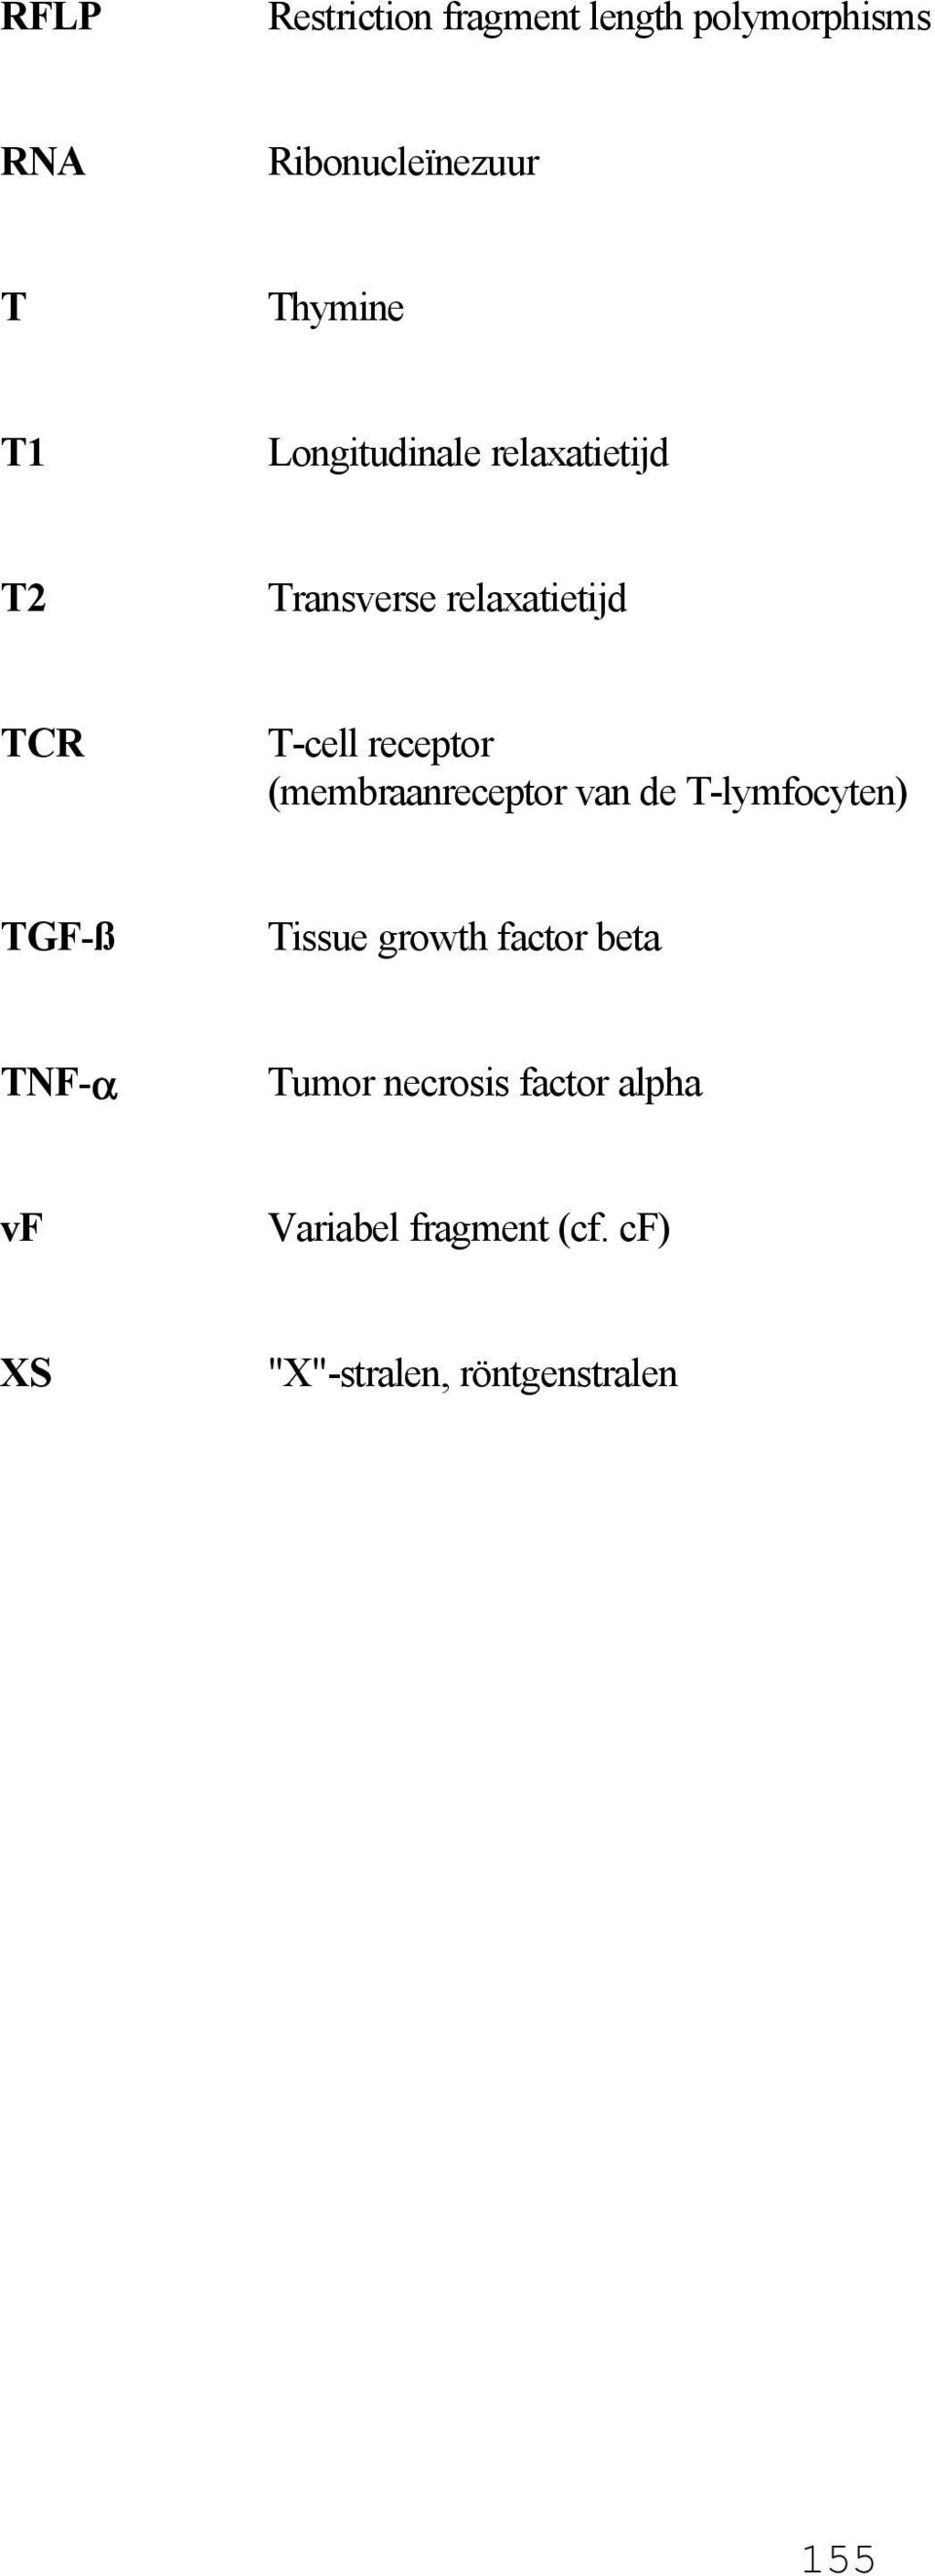 (membraanreceptor van de T-lymfocyten) TGF-ß Tissue growth factor beta TNF-α